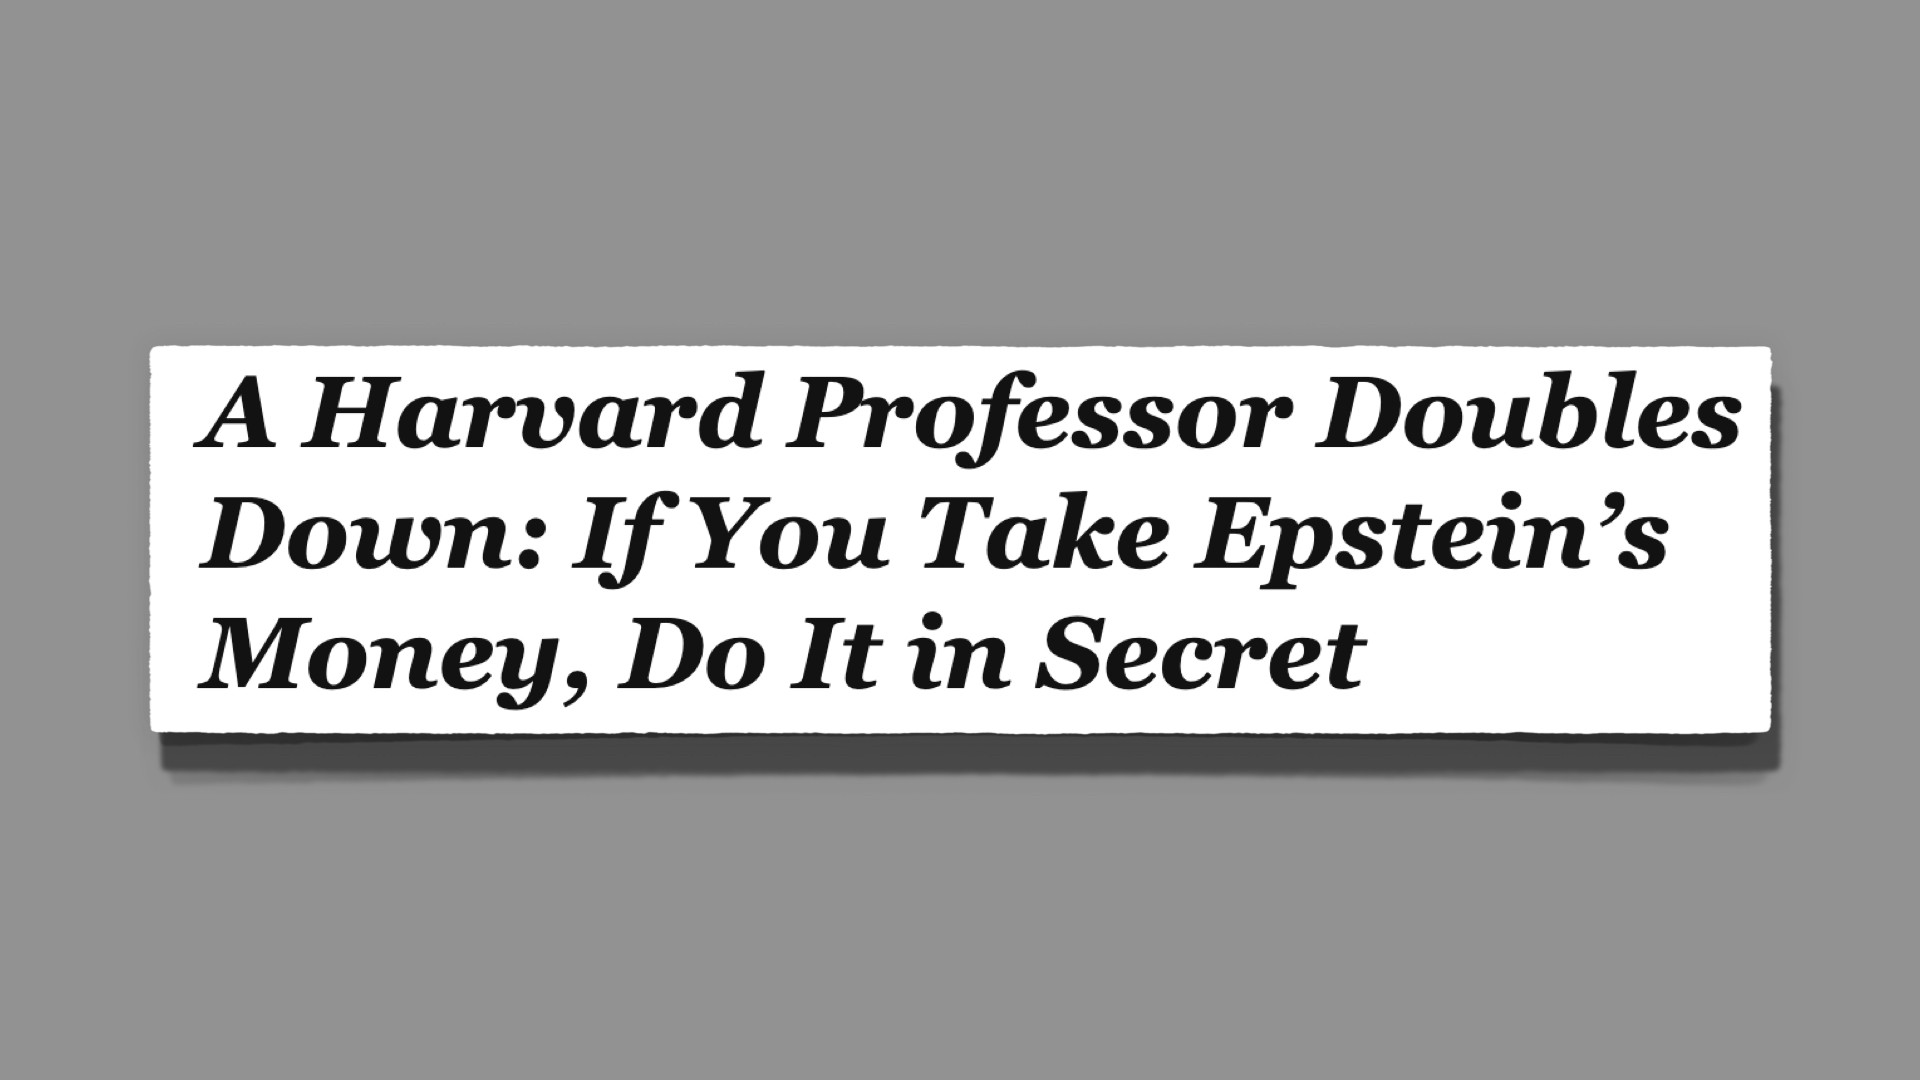 Headline: A Harvard Professor Doubles Down: If you take Epstein's money do it in secret